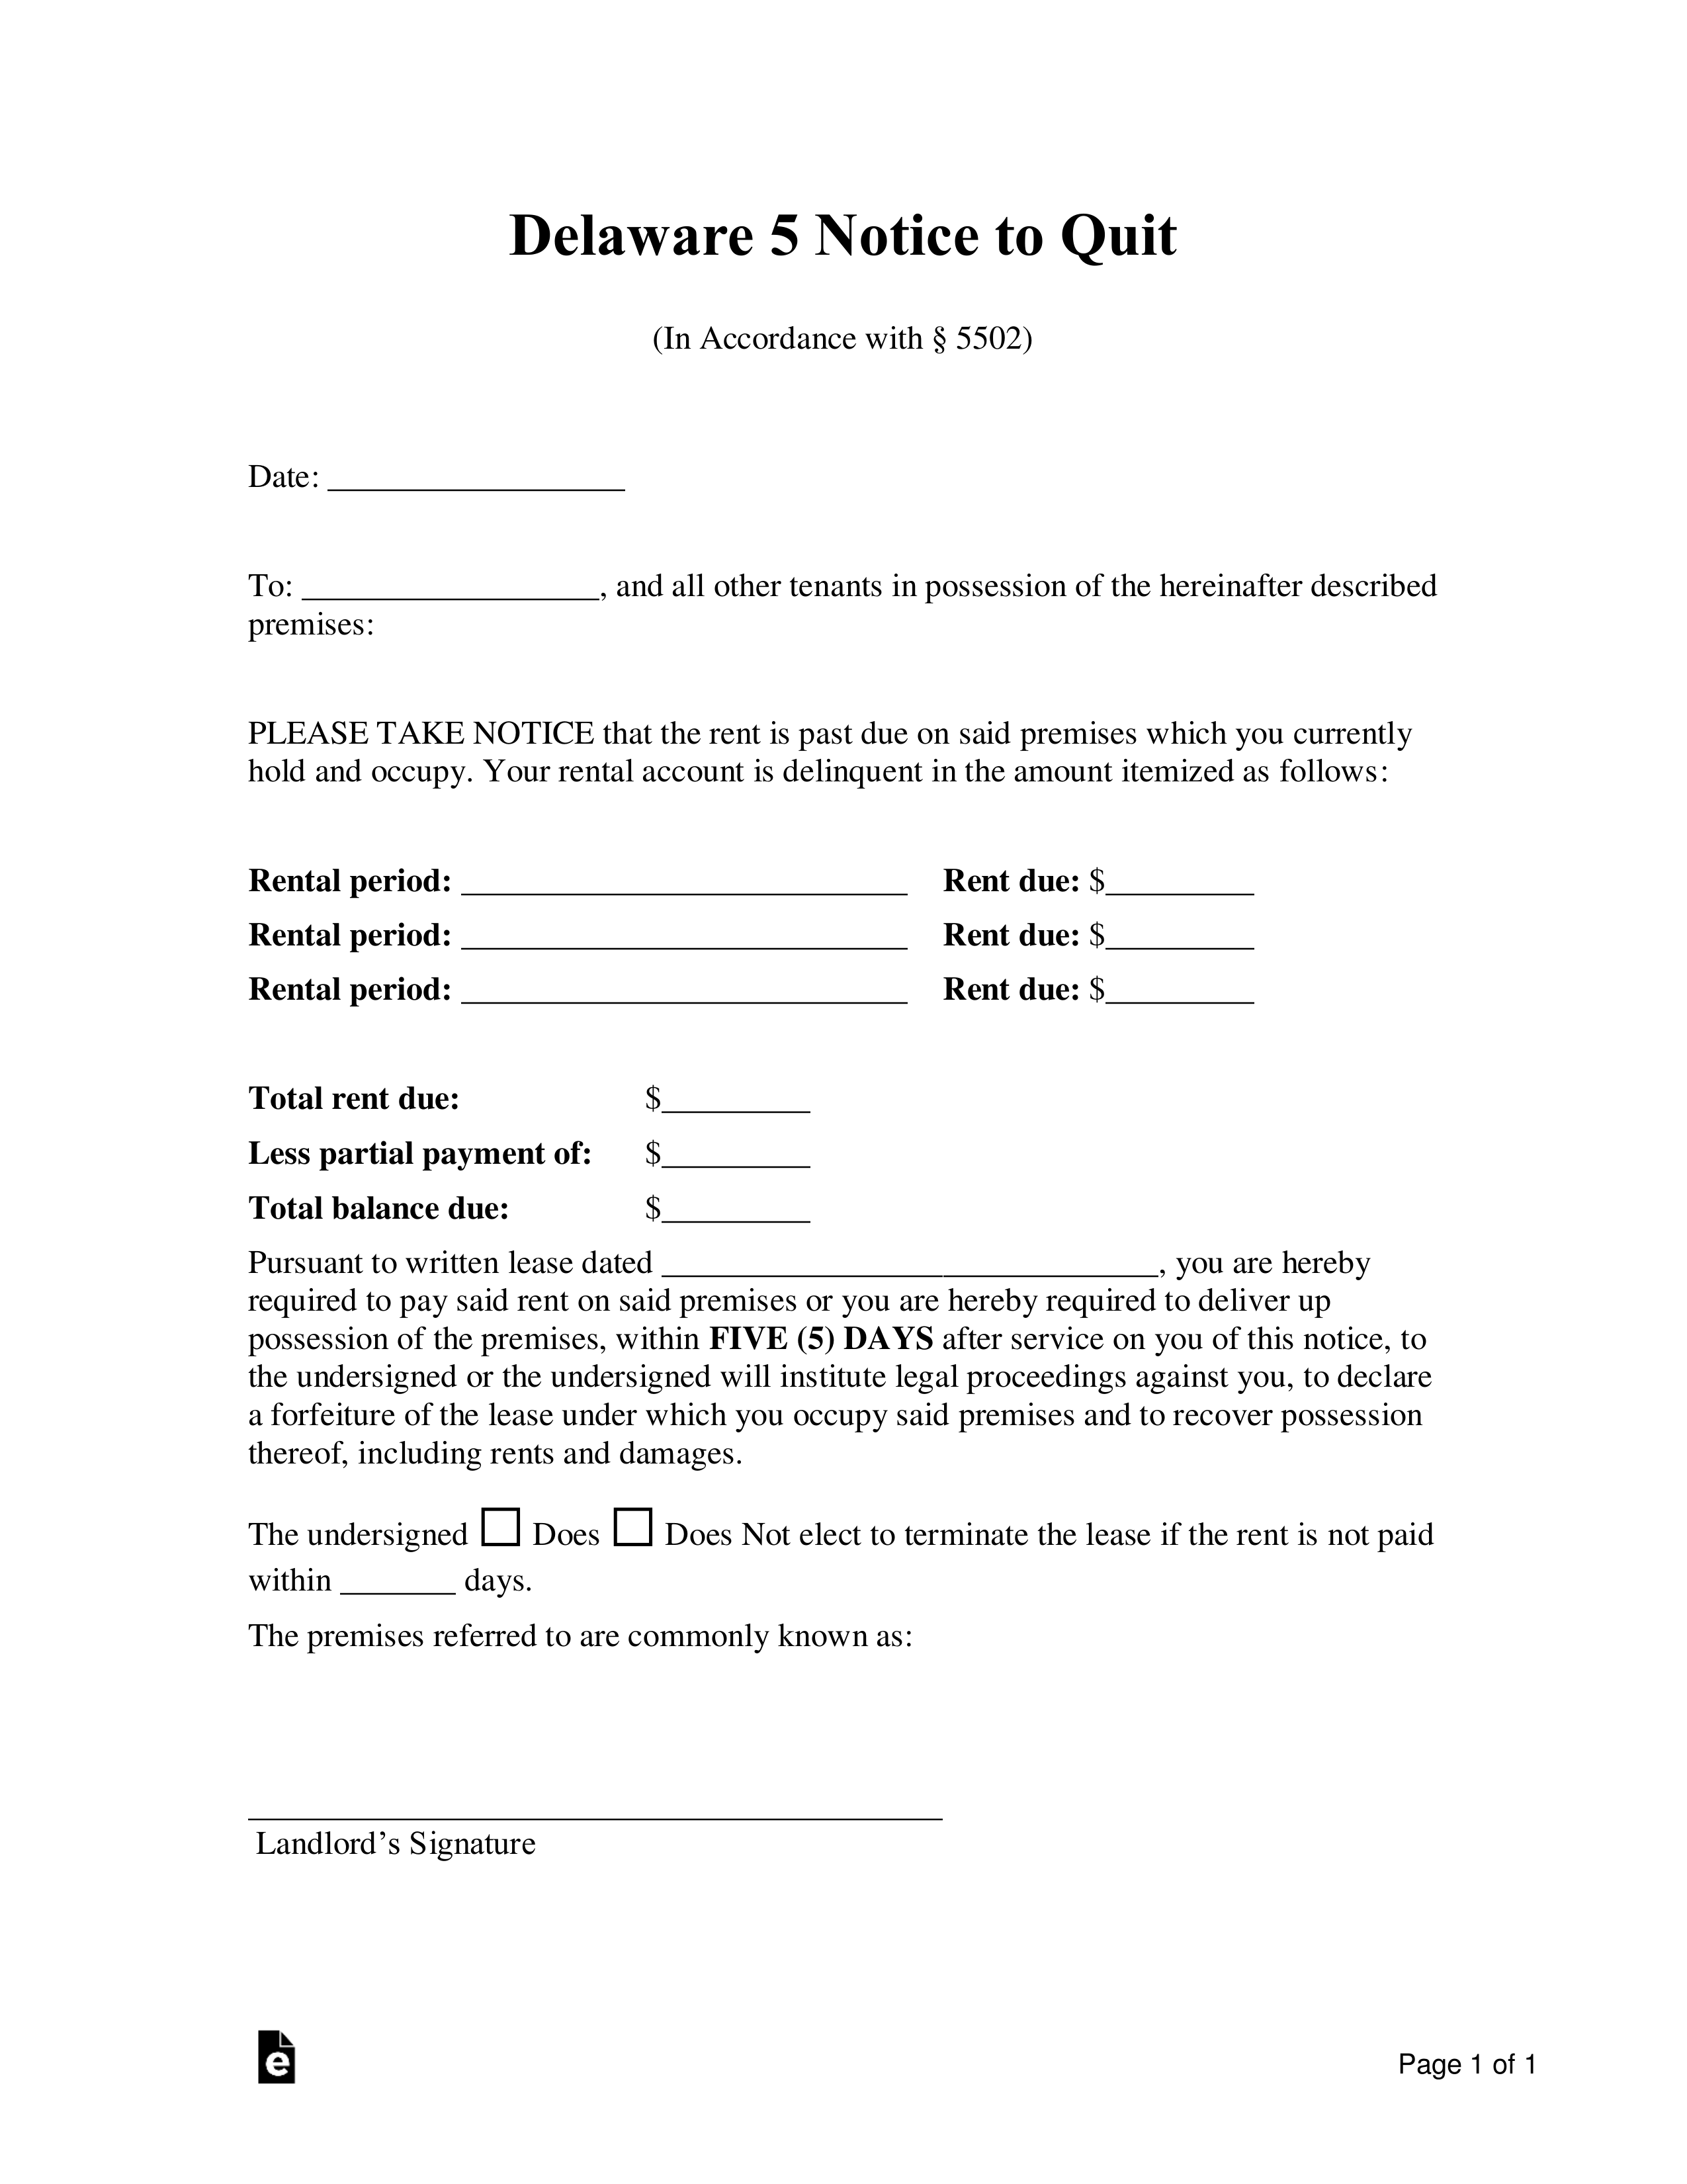 Delaware 30 Day Notice to Quit Form   Non Payment of Rent – eForms